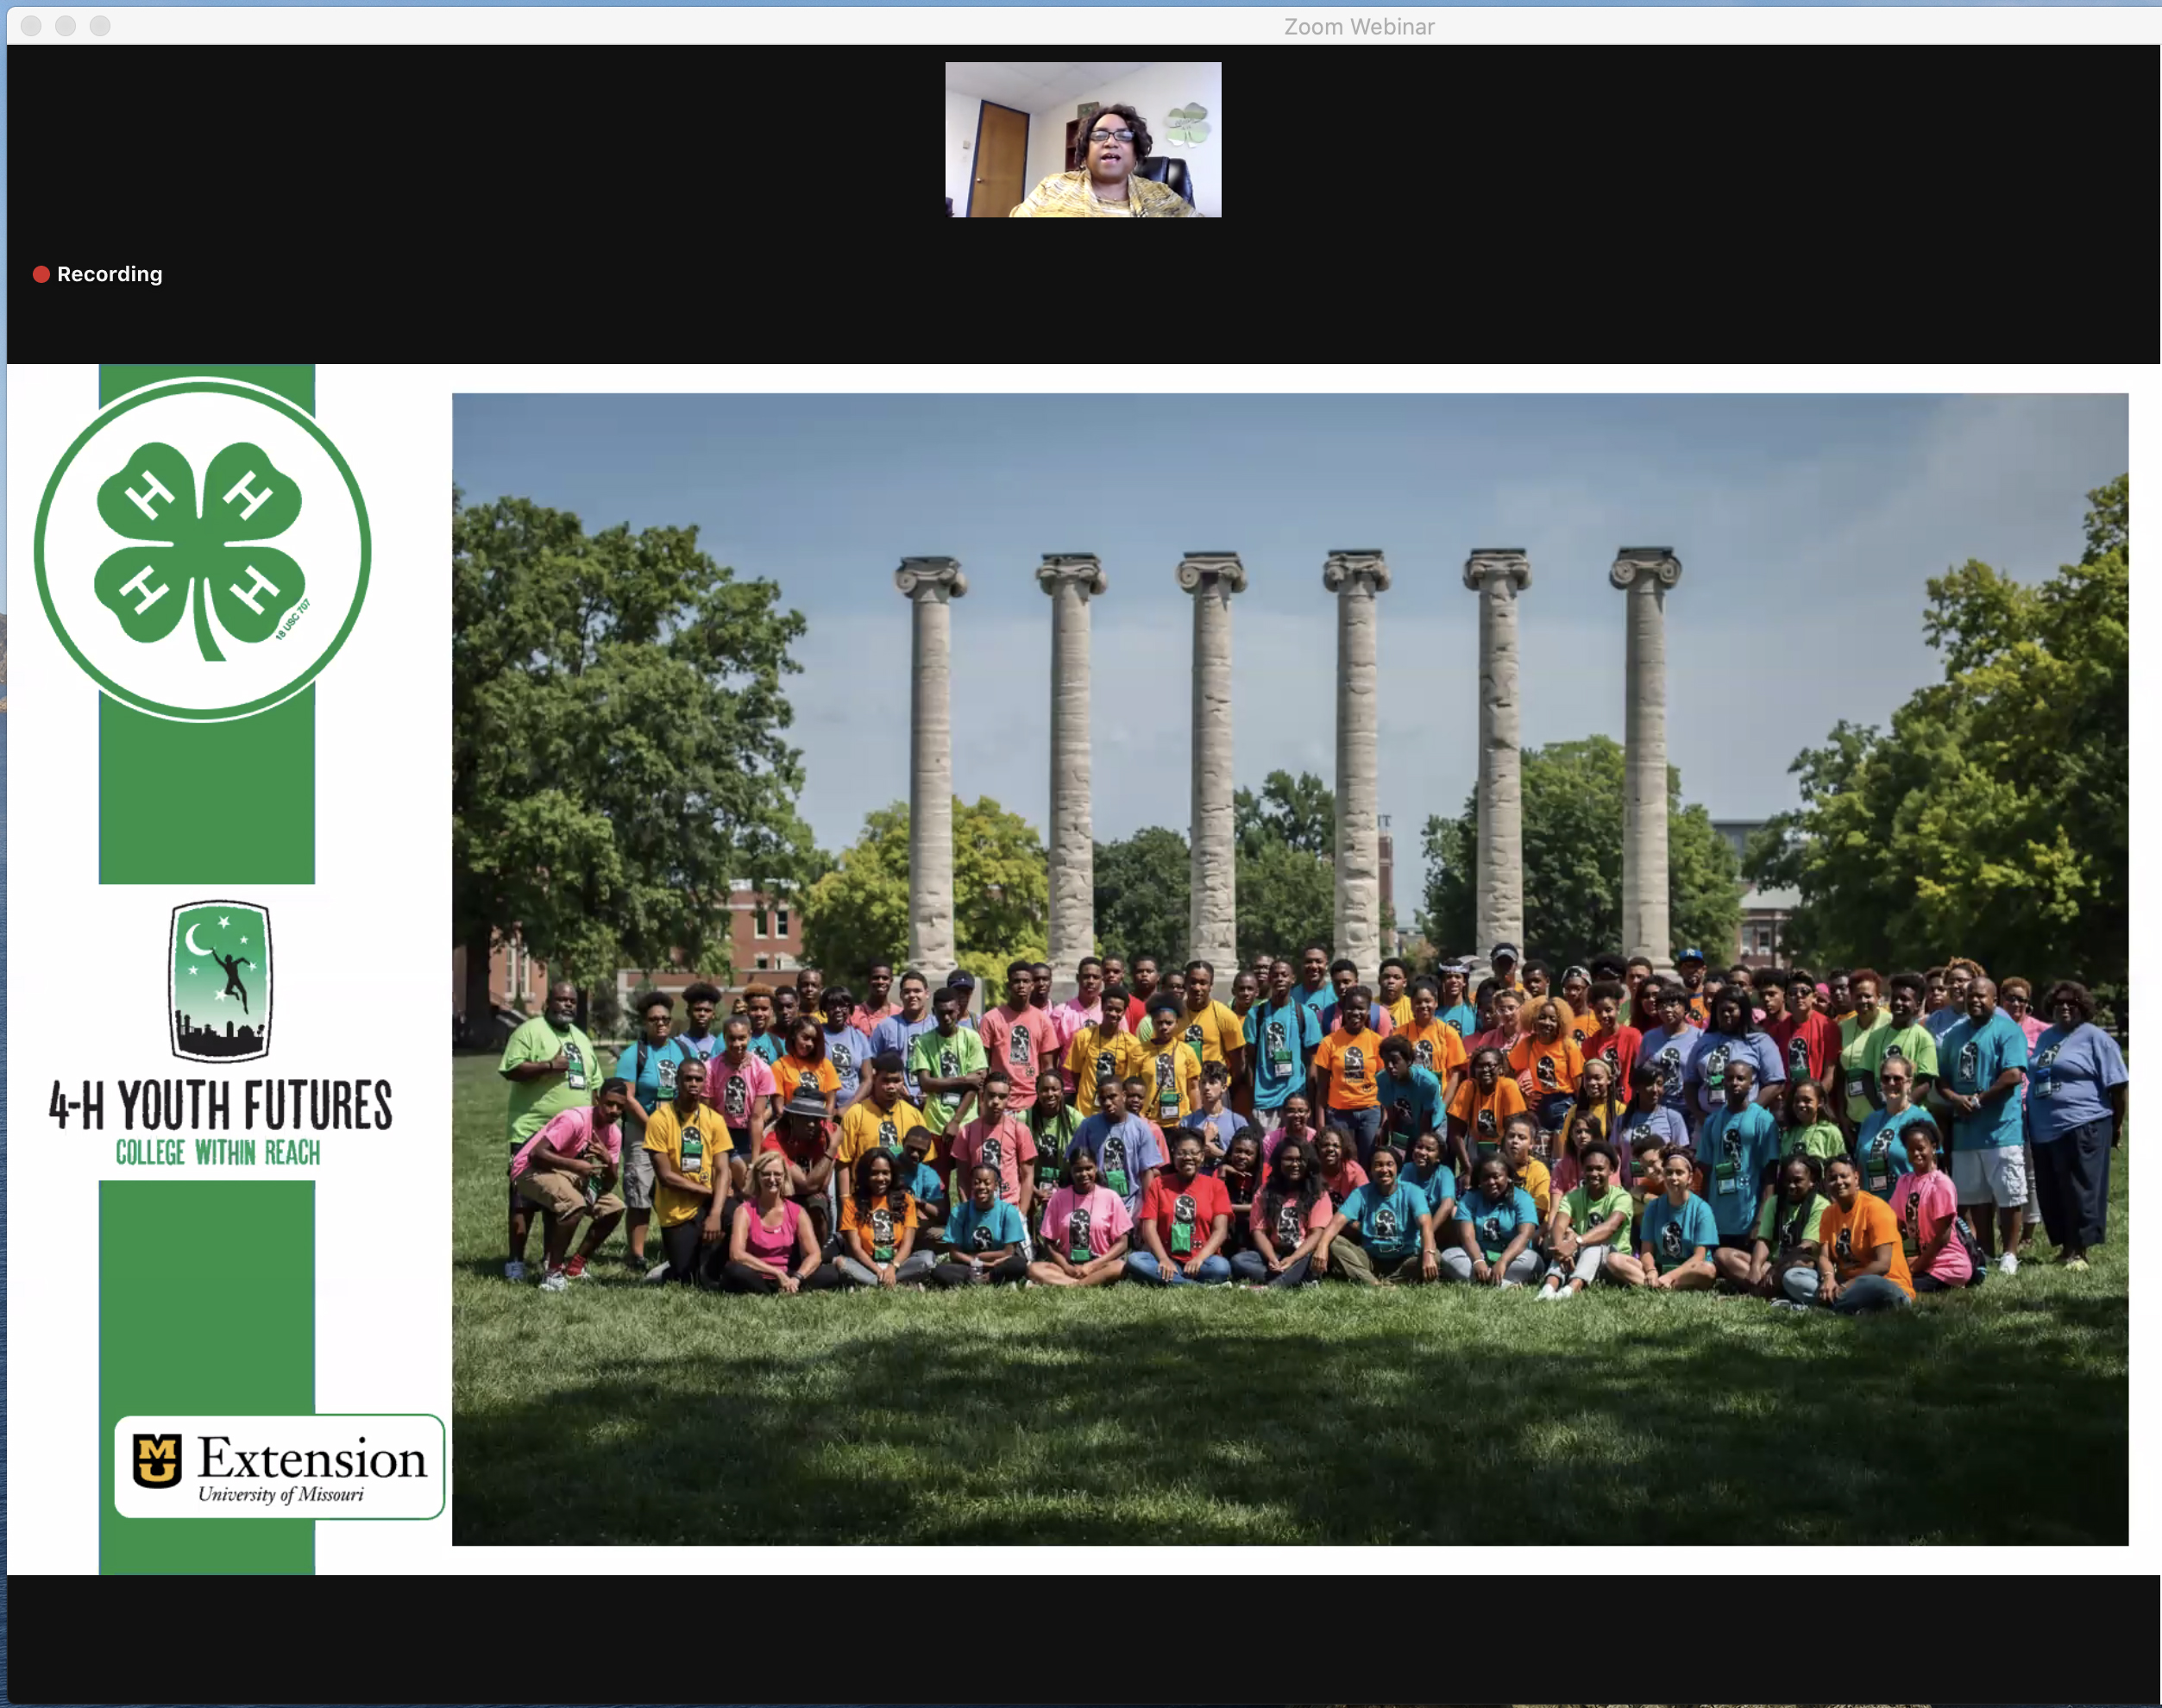 4-H Youth Futures Conference on the Mizzou and Lincoln University campuses offers workshops, information sessions and firsthand experience of college life. For 2020, Youth Futures held an abbreviated online conference.